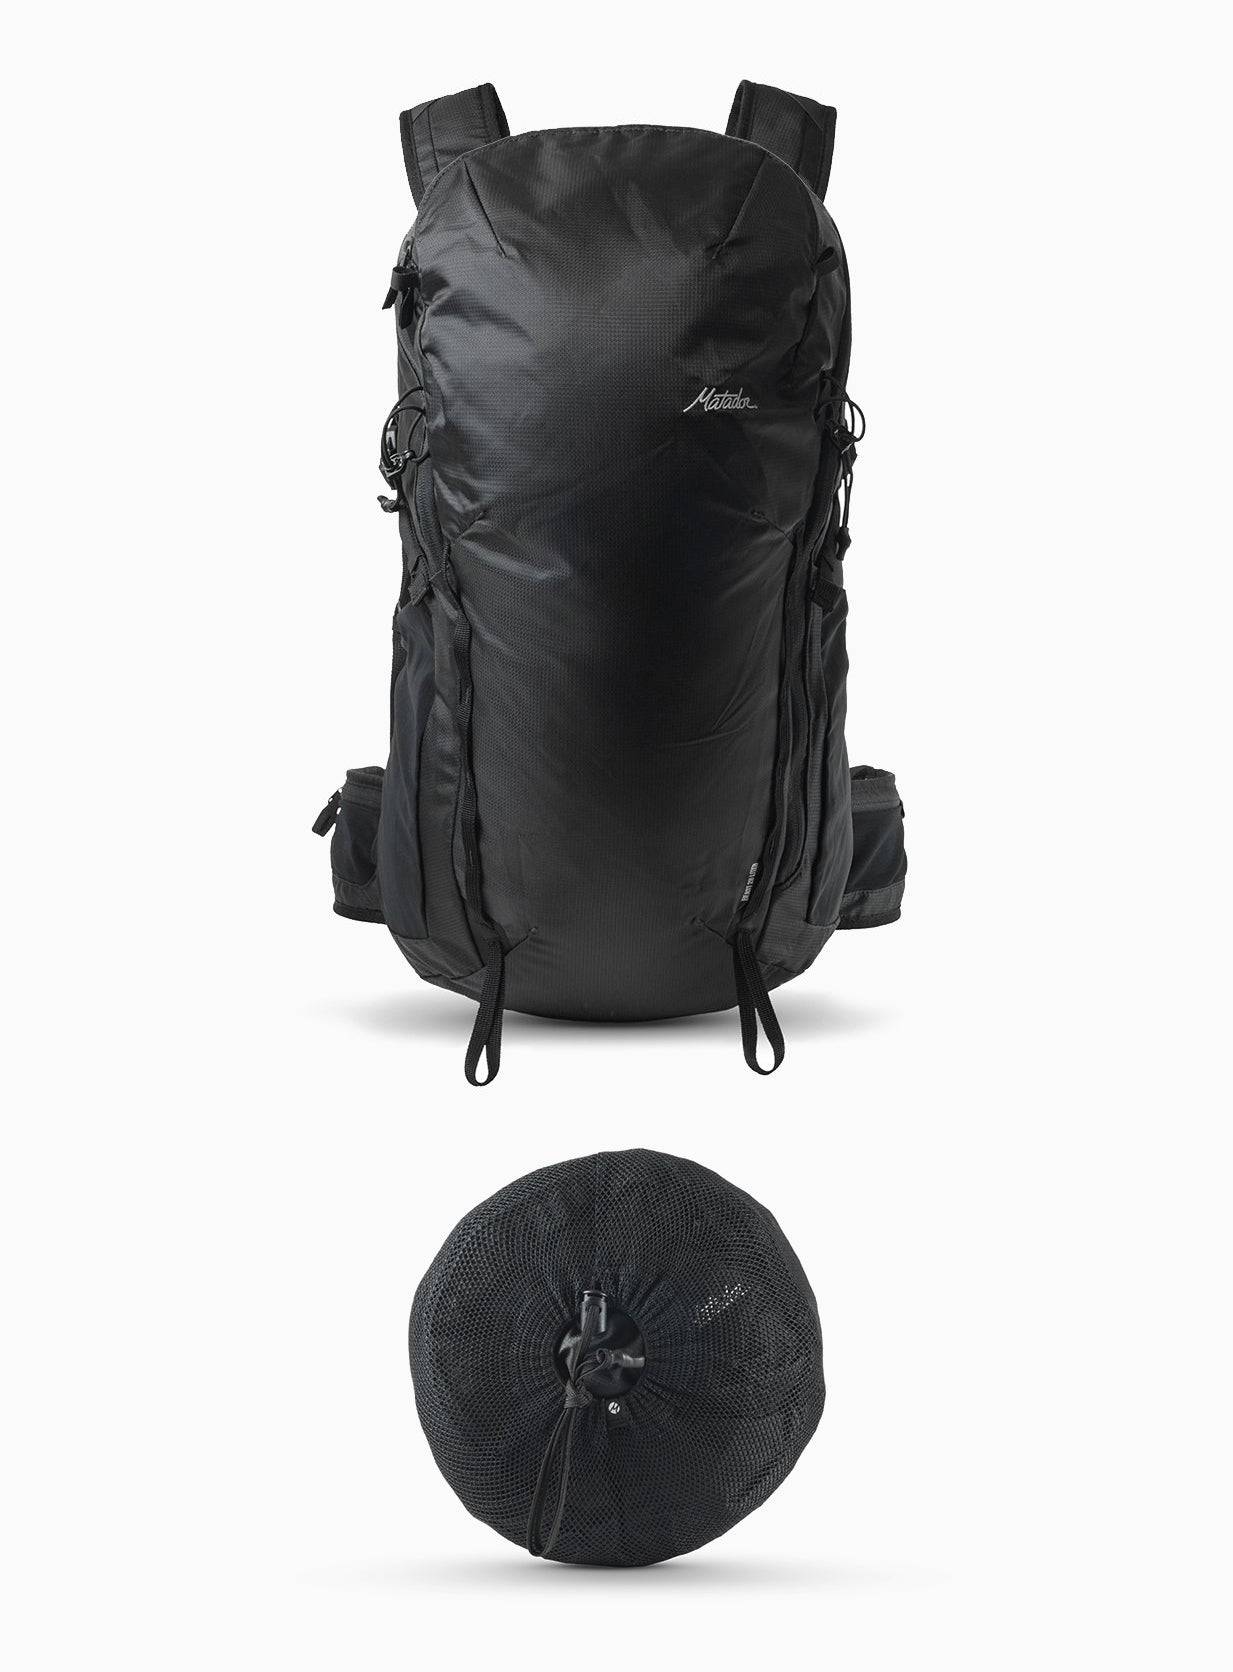 Backpack and packed down pouch on white background